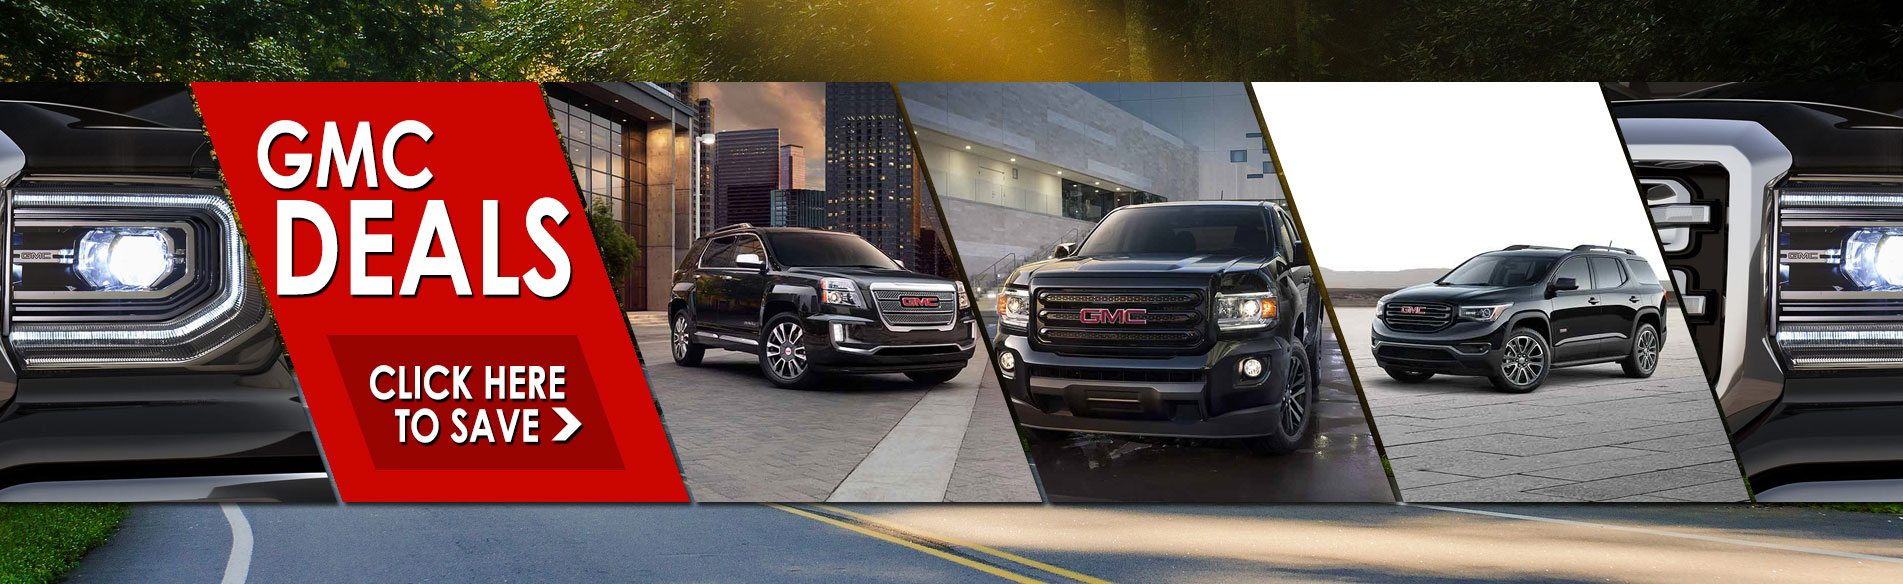 Great deals on new GMC trucks and SUVs in Georgetown Ontario at Georgetown Chevrolet